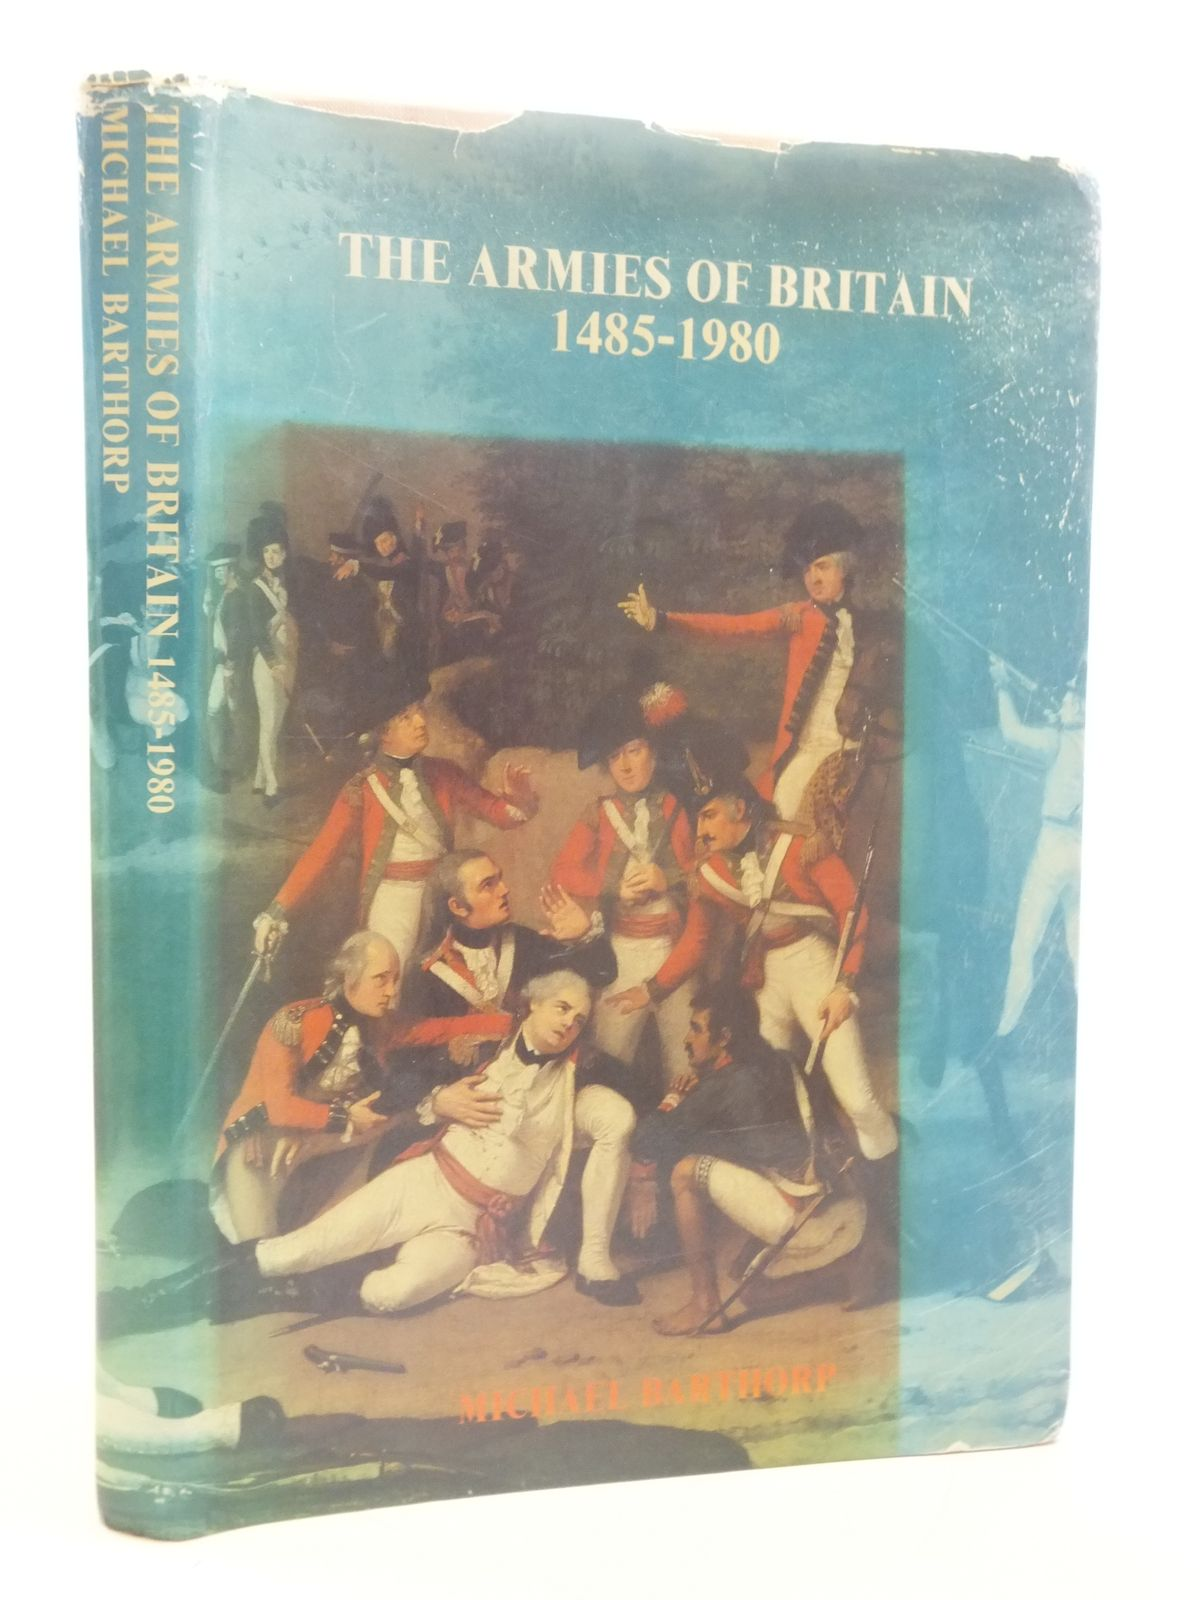 Photo of THE ARMIES OF BRITAIN 1485-1980 written by Barthorp, Michael published by National Army Museum (STOCK CODE: 1605229)  for sale by Stella & Rose's Books